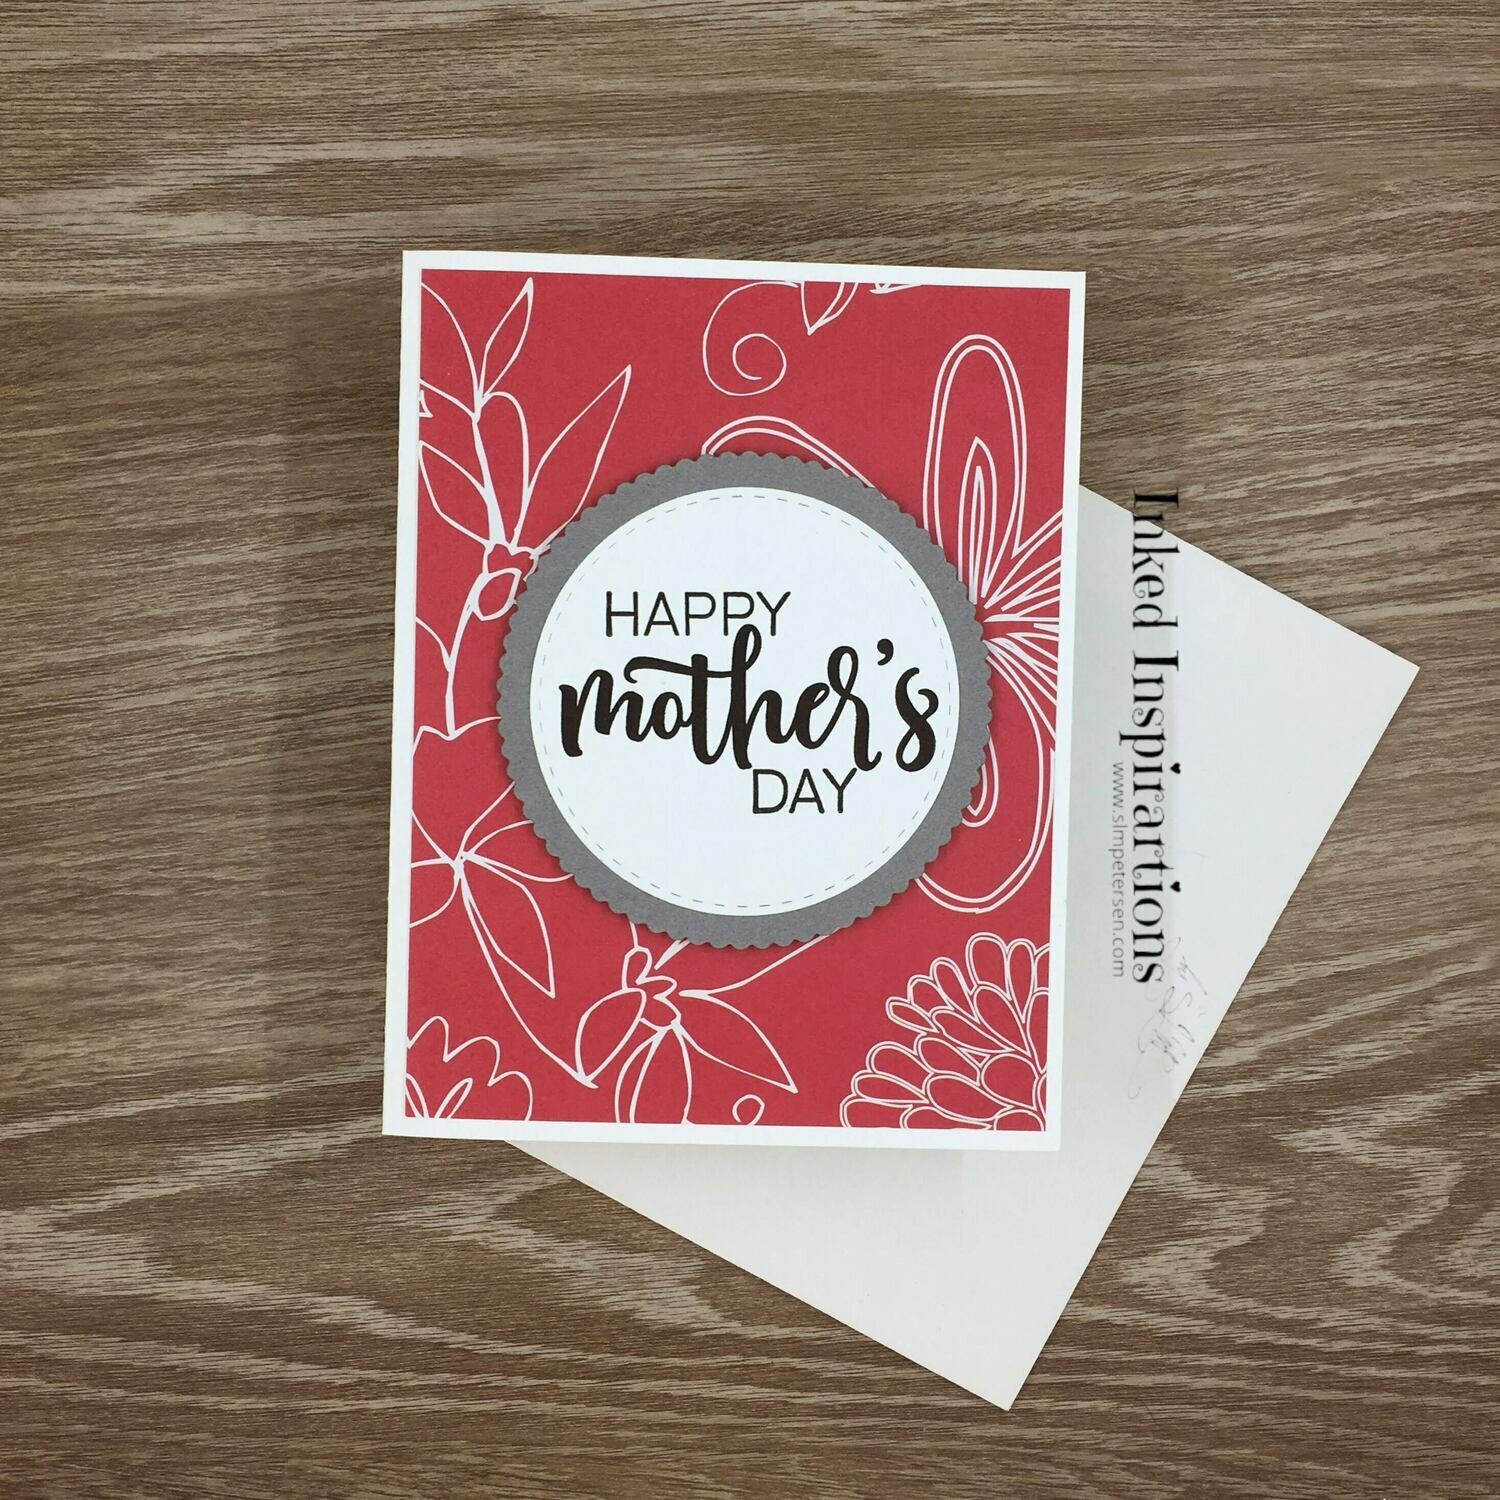 Happy Mother's Day - Red Floral